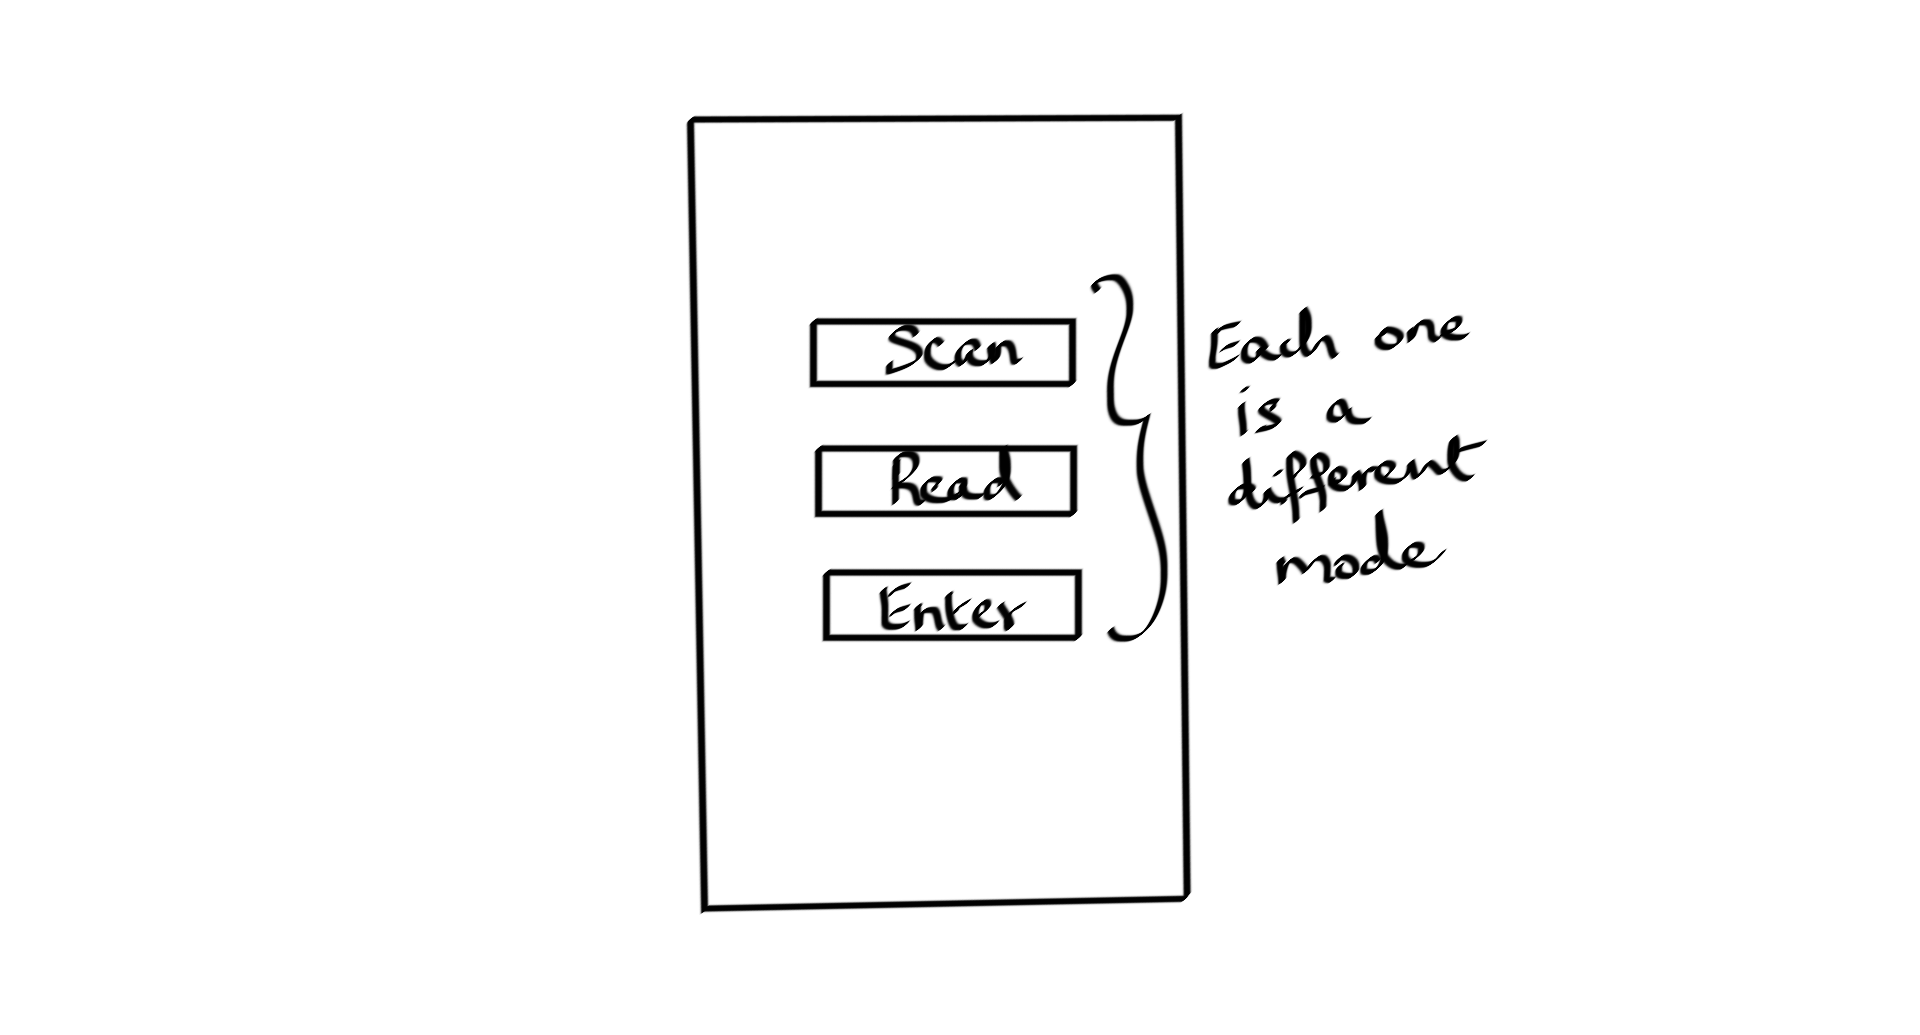 initial_fabscan_sketch